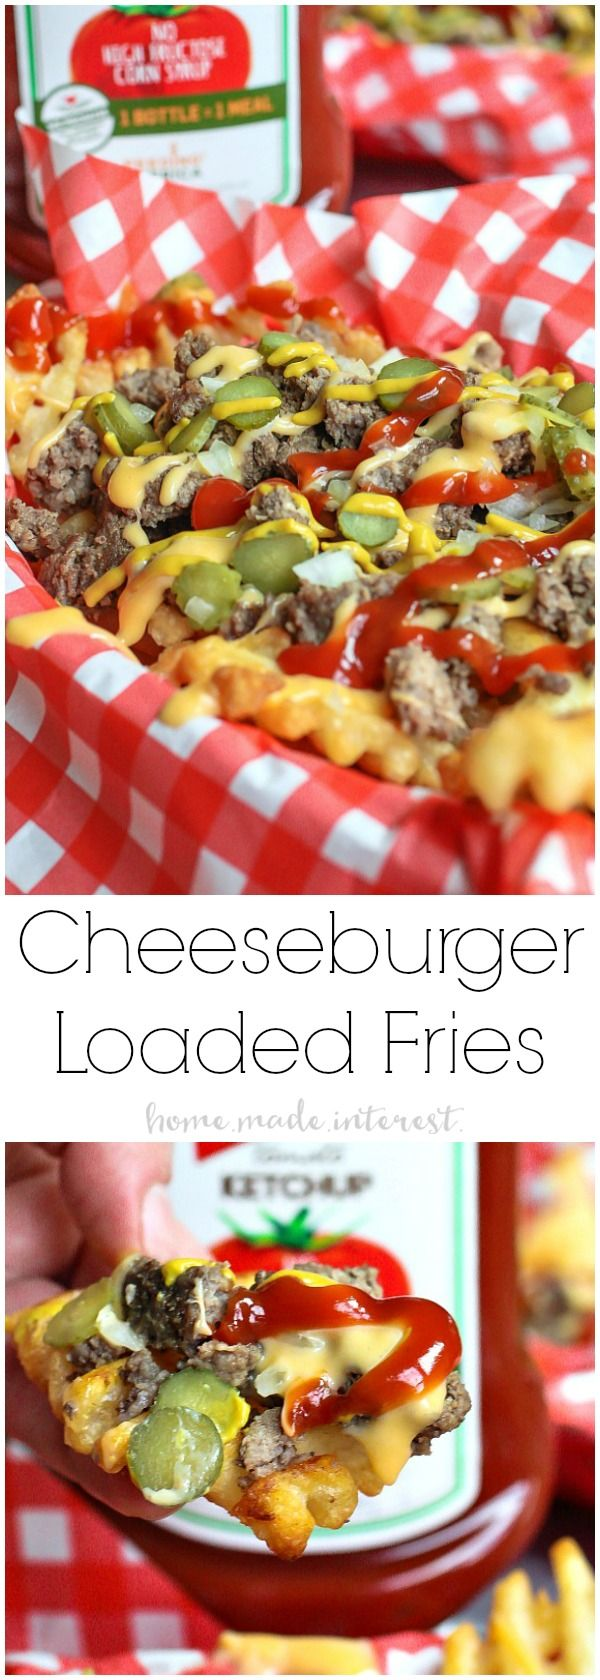 Loaded Cheeseburger Fries   These french fries are loaded with everything it takes to make a great cheeseburger. Ground beef, onions, pickles, cheese, and of course ketchup and mustard. Loaded Cheeseburger Fries are an awesome appetizer recipe for your next football party or a weeknight meal for the family. This loaded french fry recipe is going to blow your mind! #KetchupWithFrenchs #ad